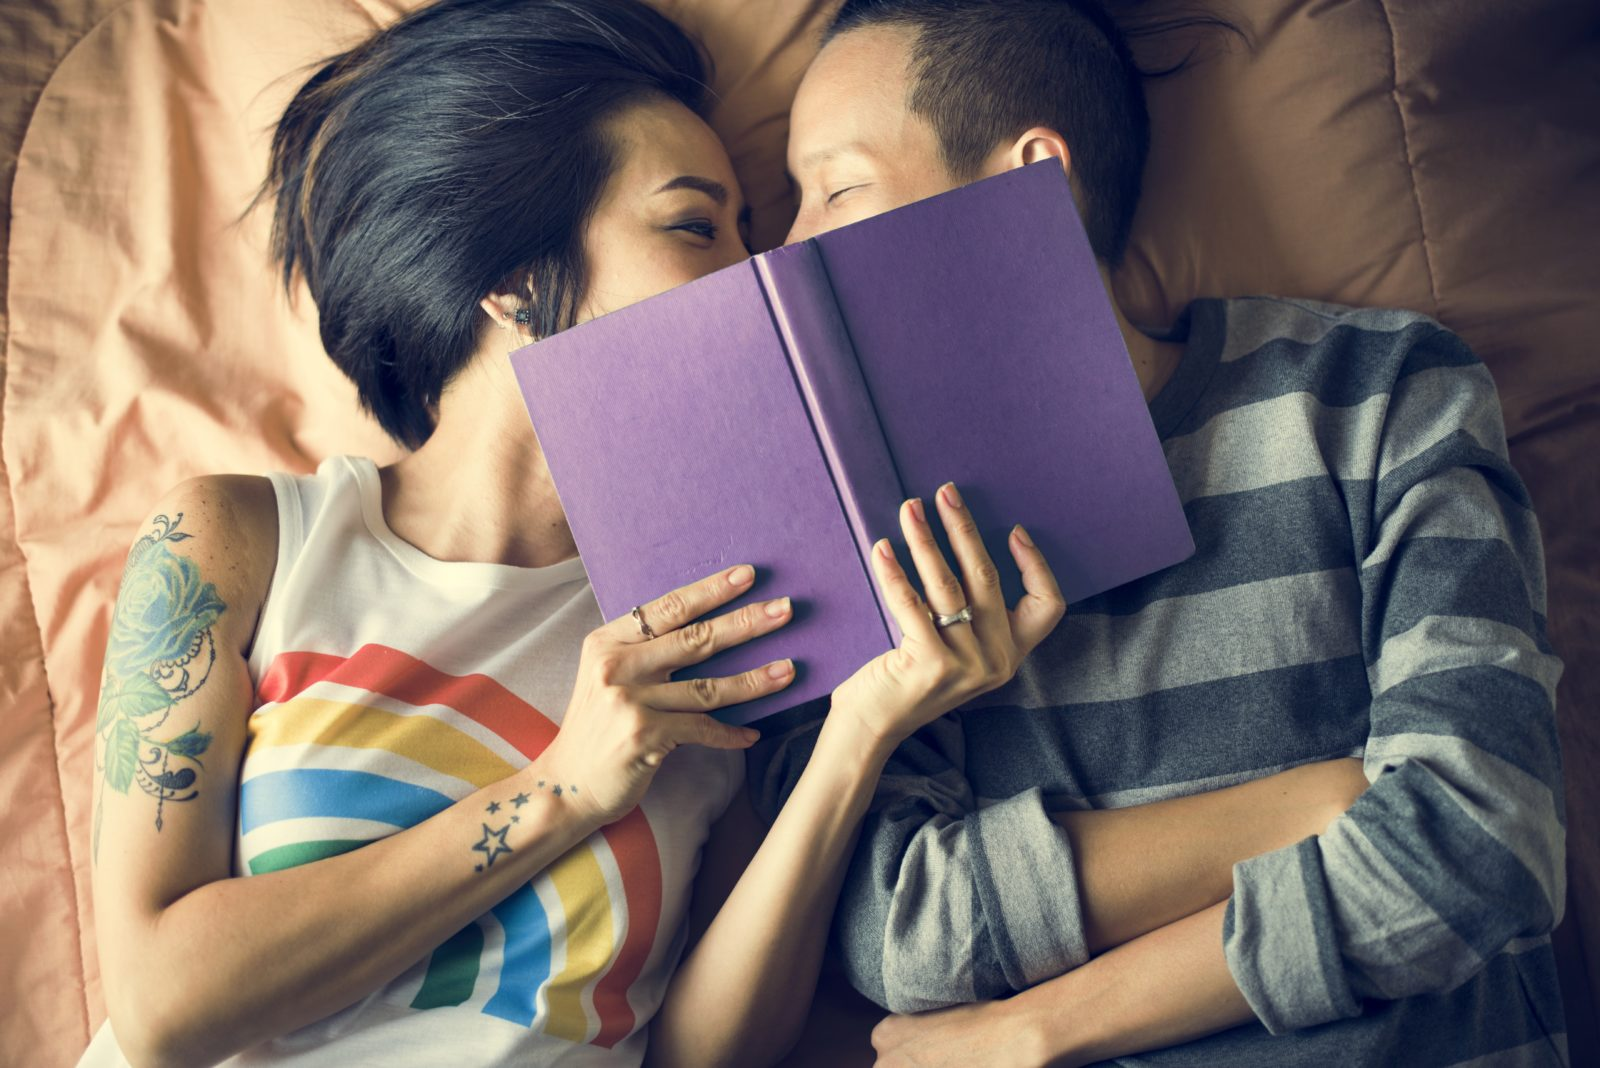 teen lesbian and bi girls unaware they can give each other stis  study shows